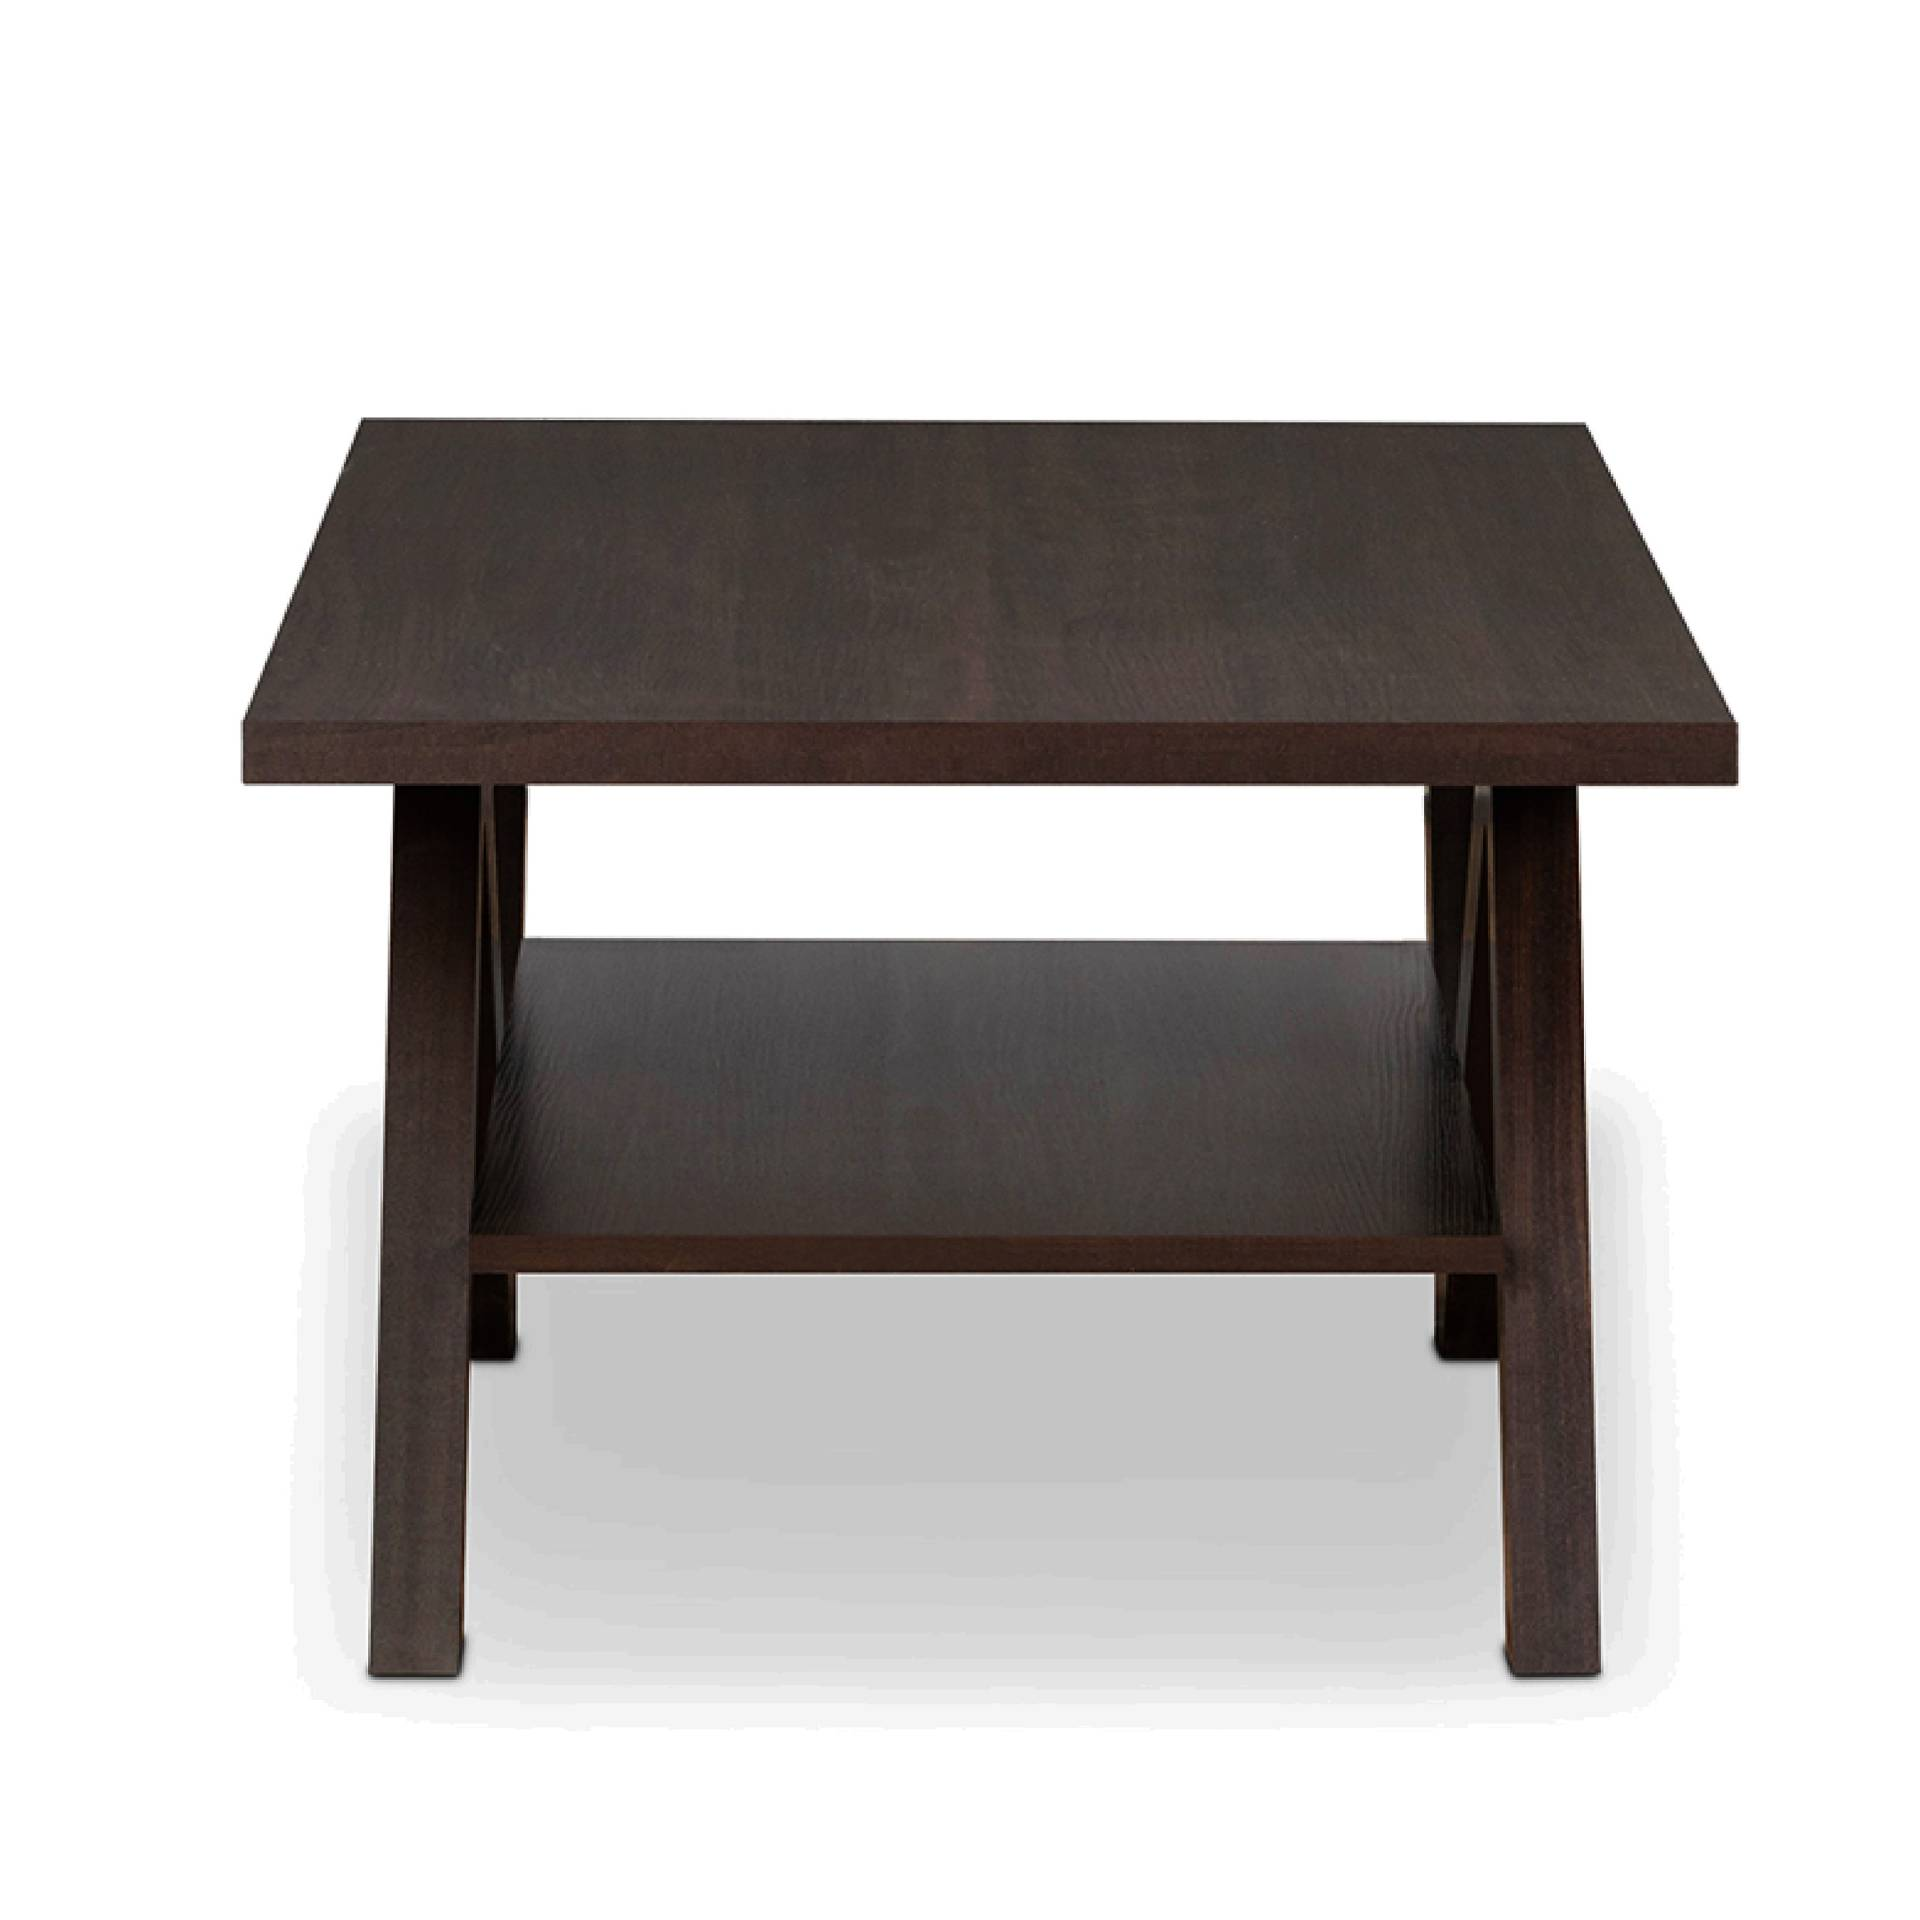 Awe Inspiring N Shape Space Coffee Table Supply One Stop Eco Friendly Machost Co Dining Chair Design Ideas Machostcouk